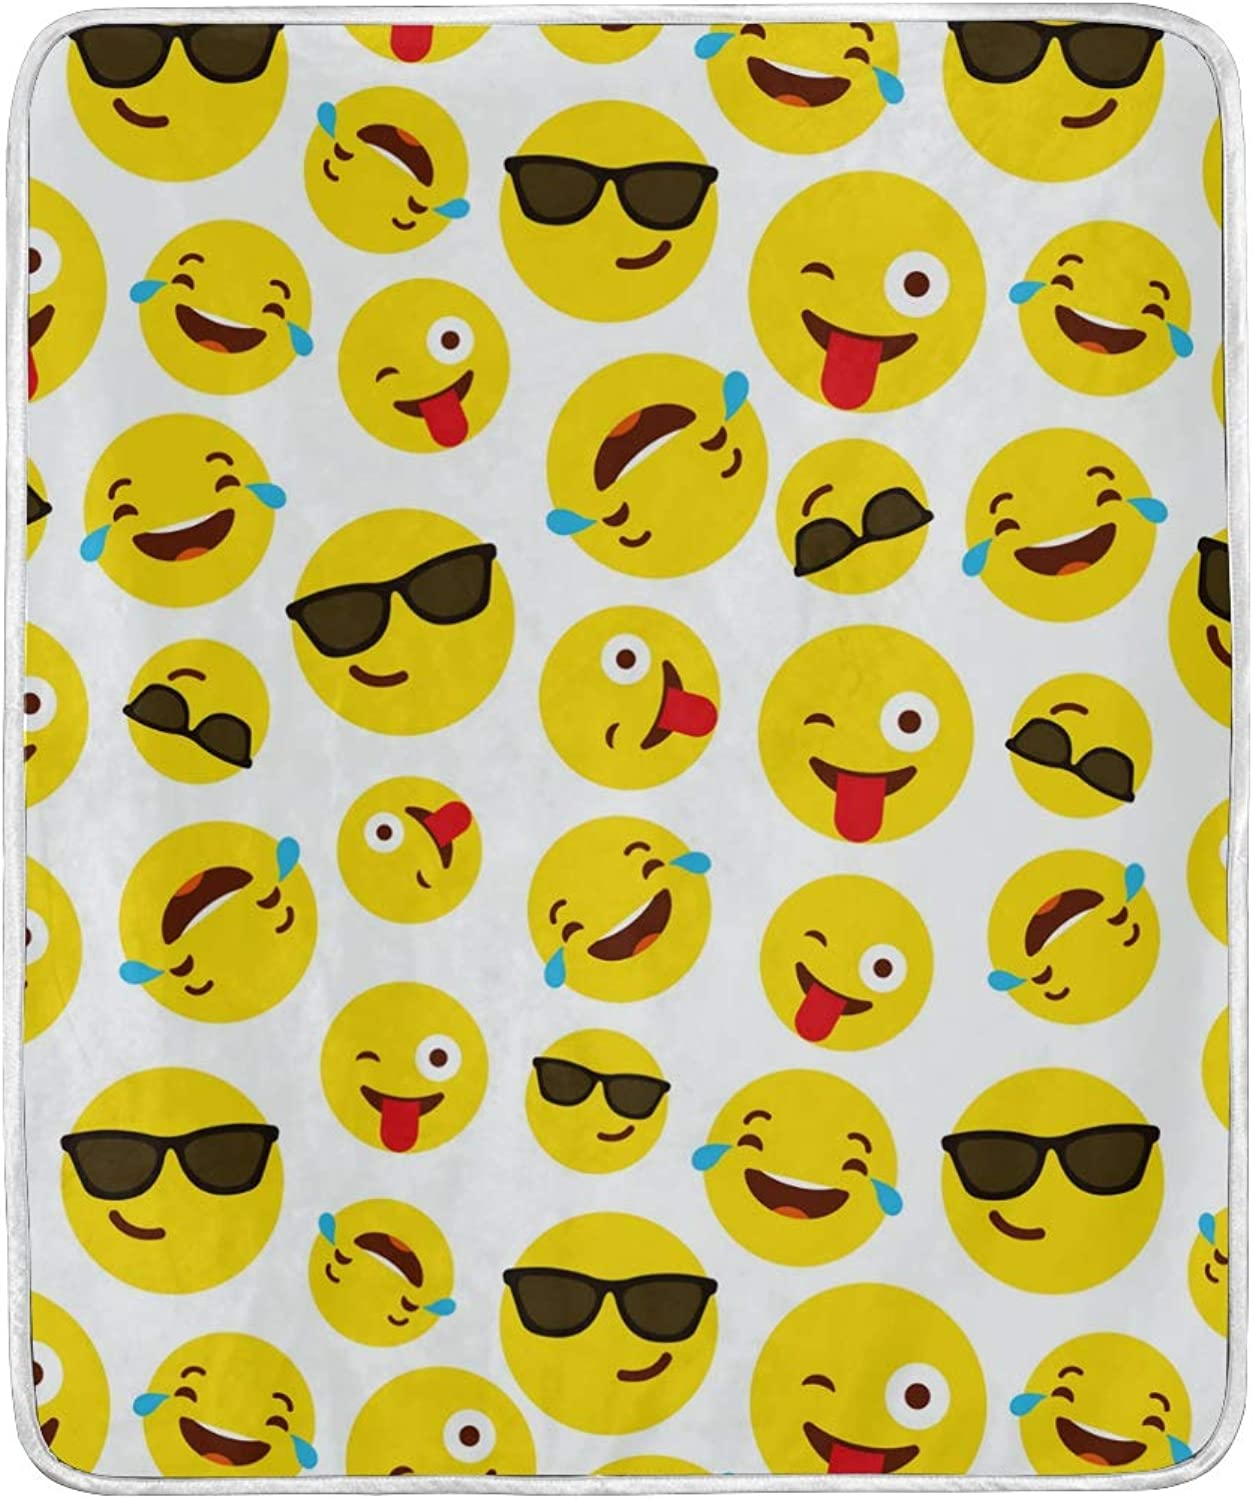 HELVOON Funny Cartoon Emoji Emoticon Smiling Throw Blanket Soft Warm Lightweight Blankets for Bed Couch Sofa Travelling Camping 60 x 50 Inch